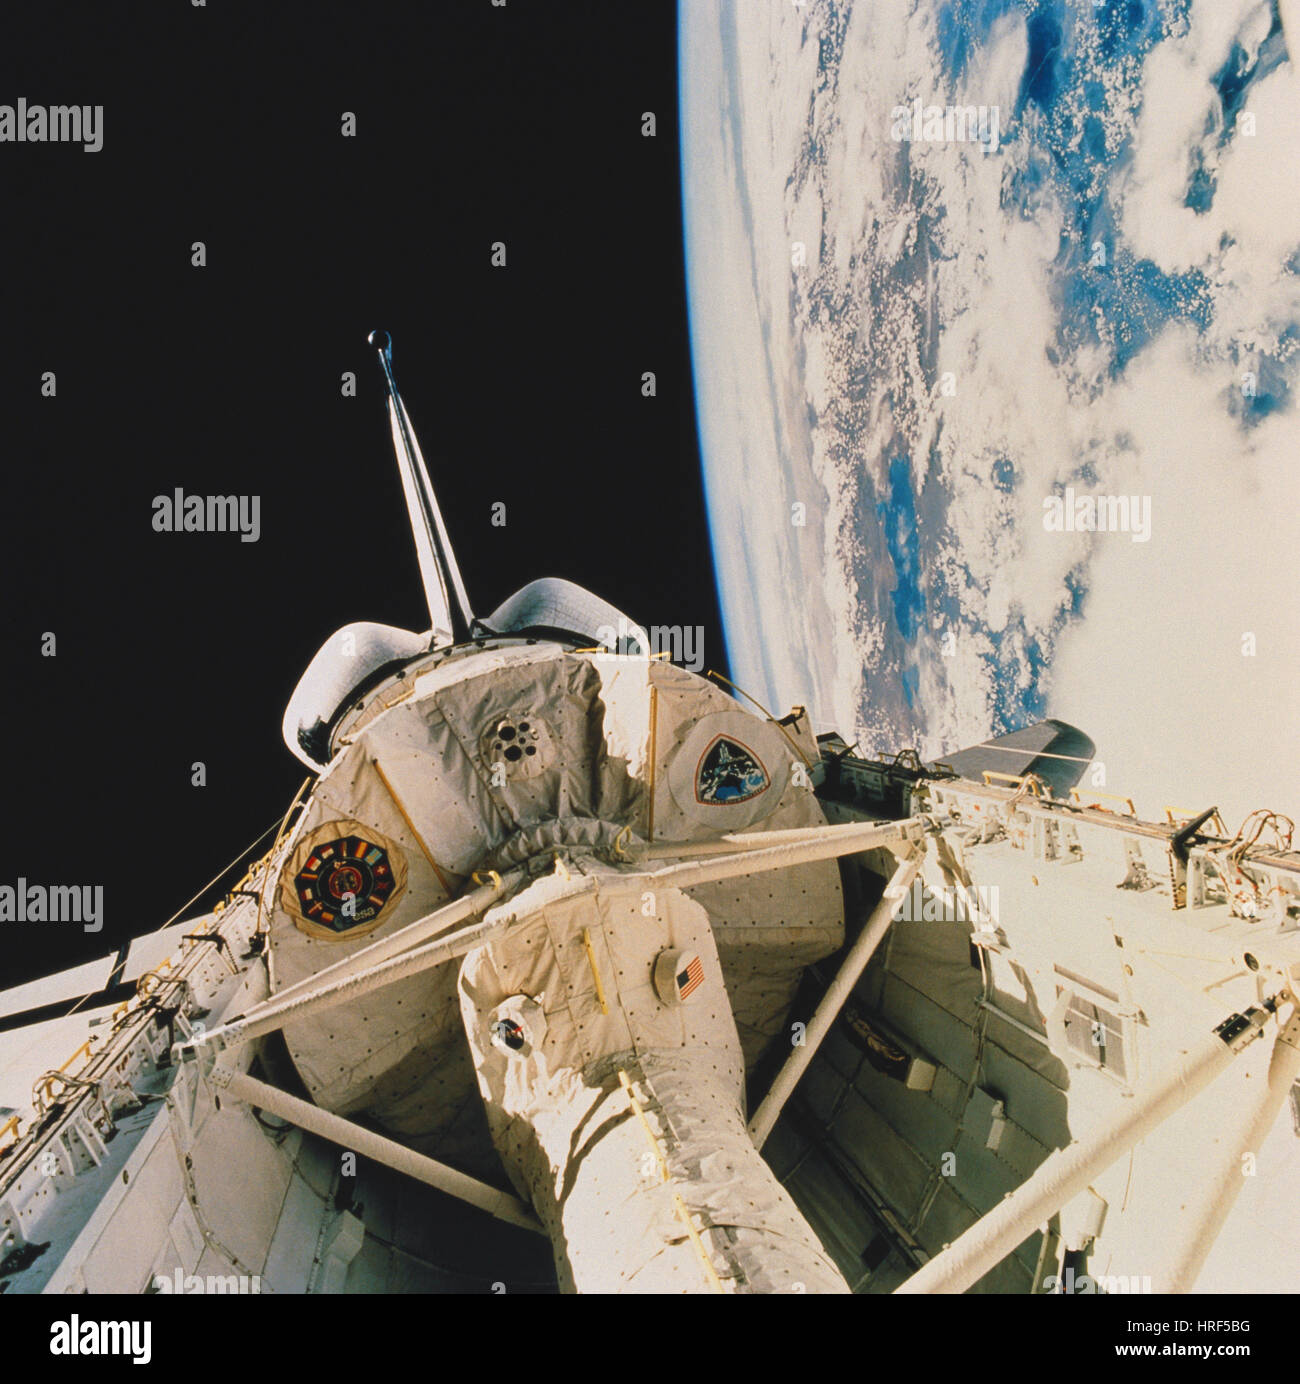 STS-58, Space Shuttle Columbia, 1993 - Stock Image